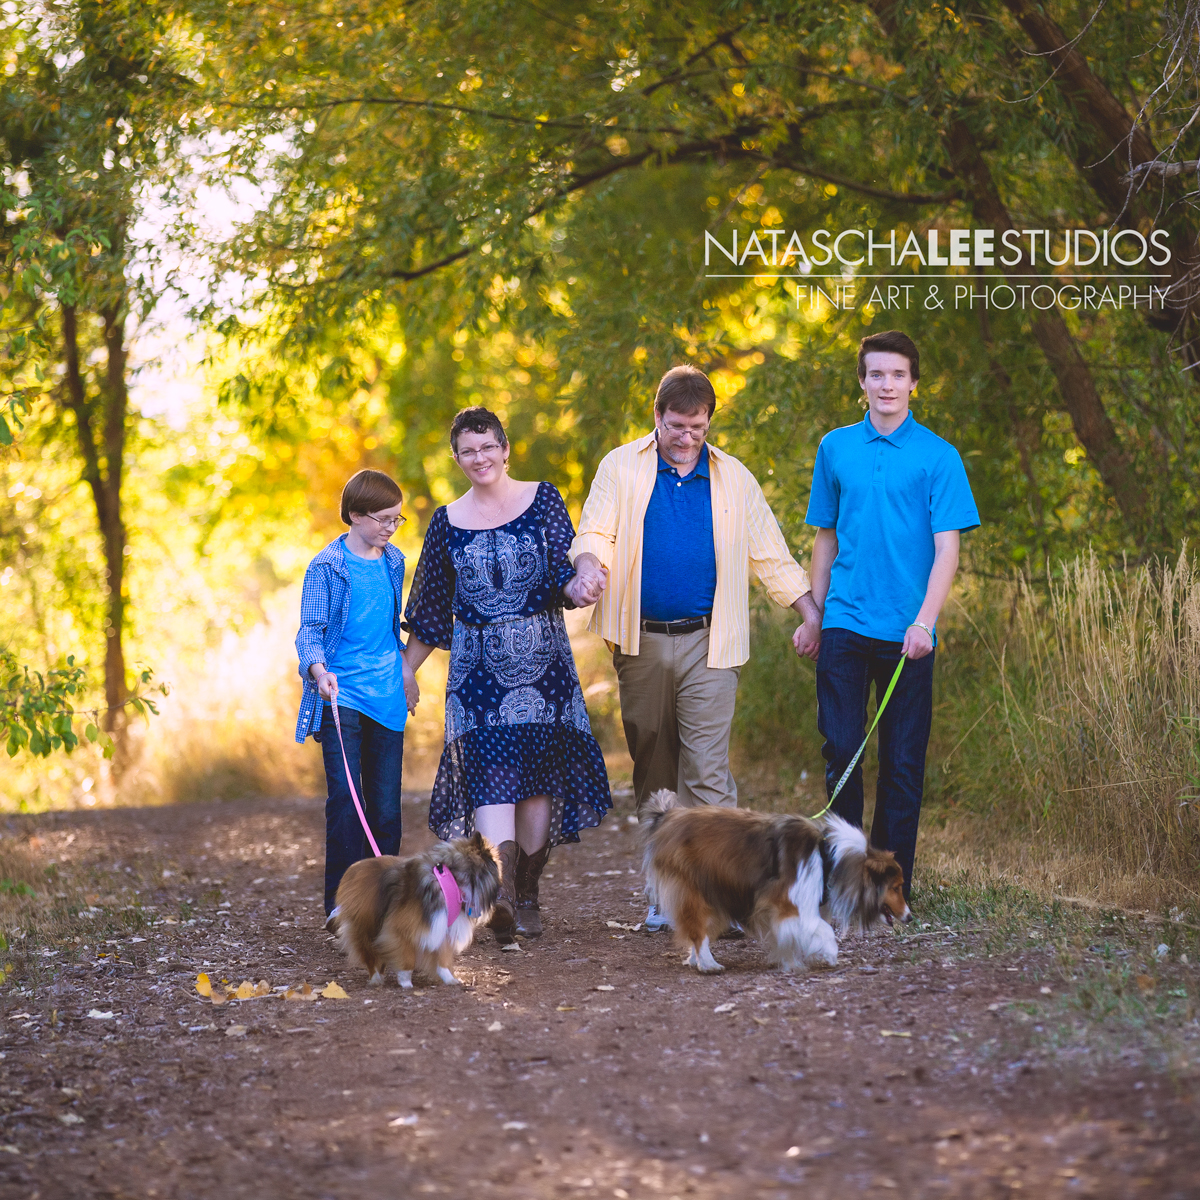 Broomfield Family and Pet Photography - with Dogs (Natascha Lee Studios)